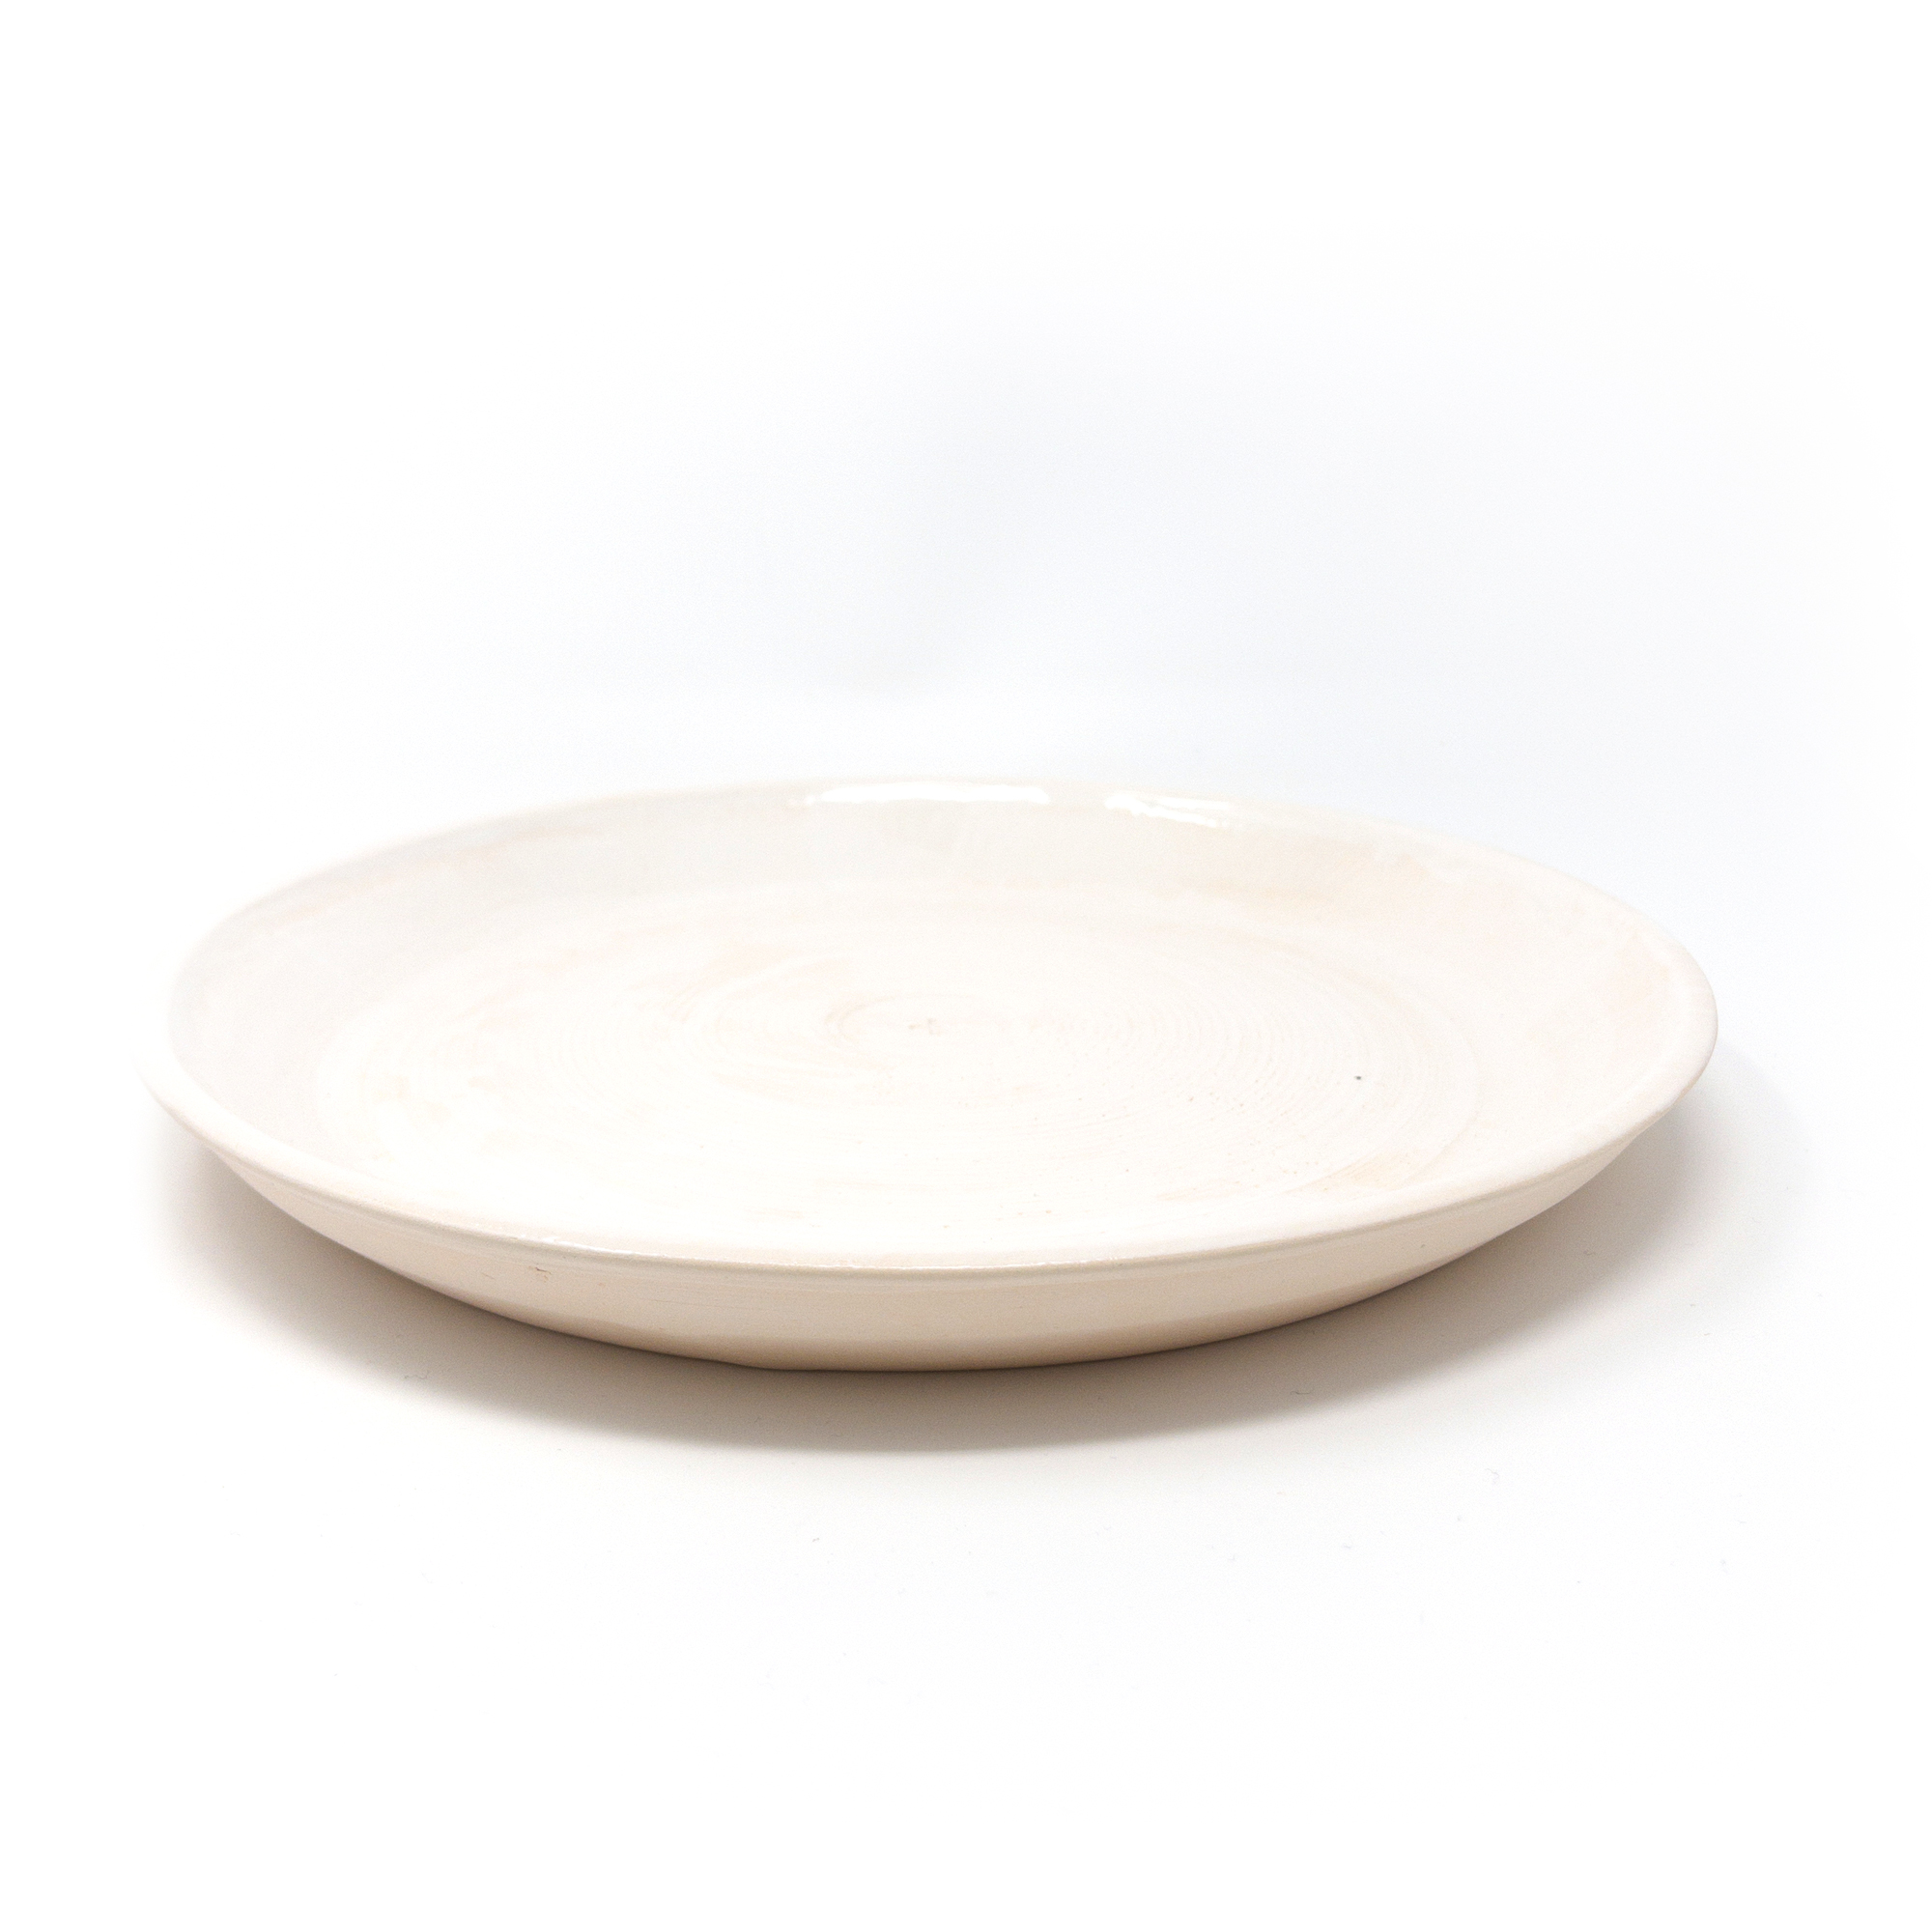 X SERVING Plate